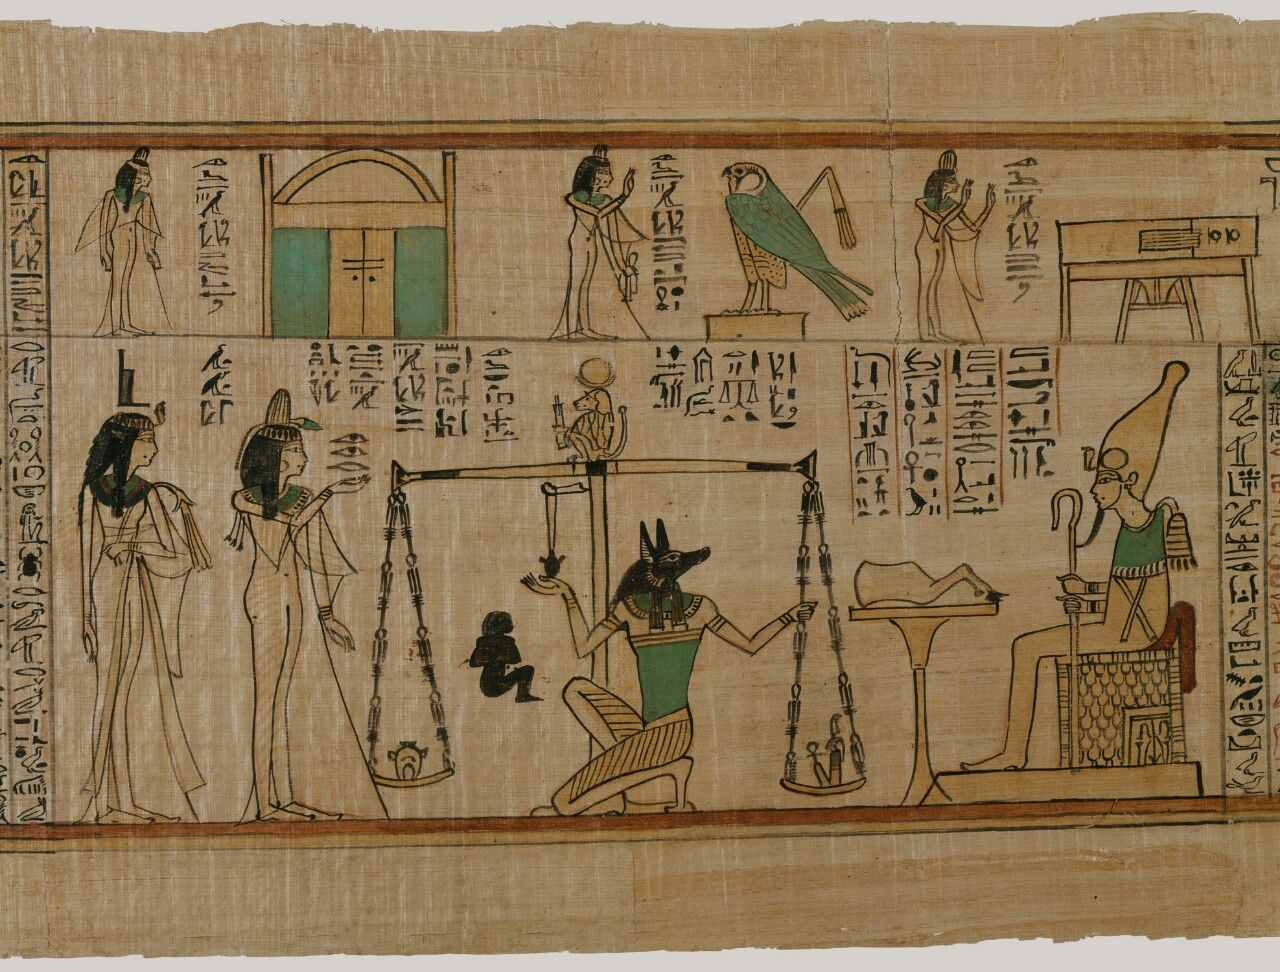 ~The Singer of Amun Nany's Funerary Papyrus. Period: Third Intermediate Period Dynasty: Dynasty 21 Reign: reign of Psusennes I-II Date: ca. 1050 B.C.